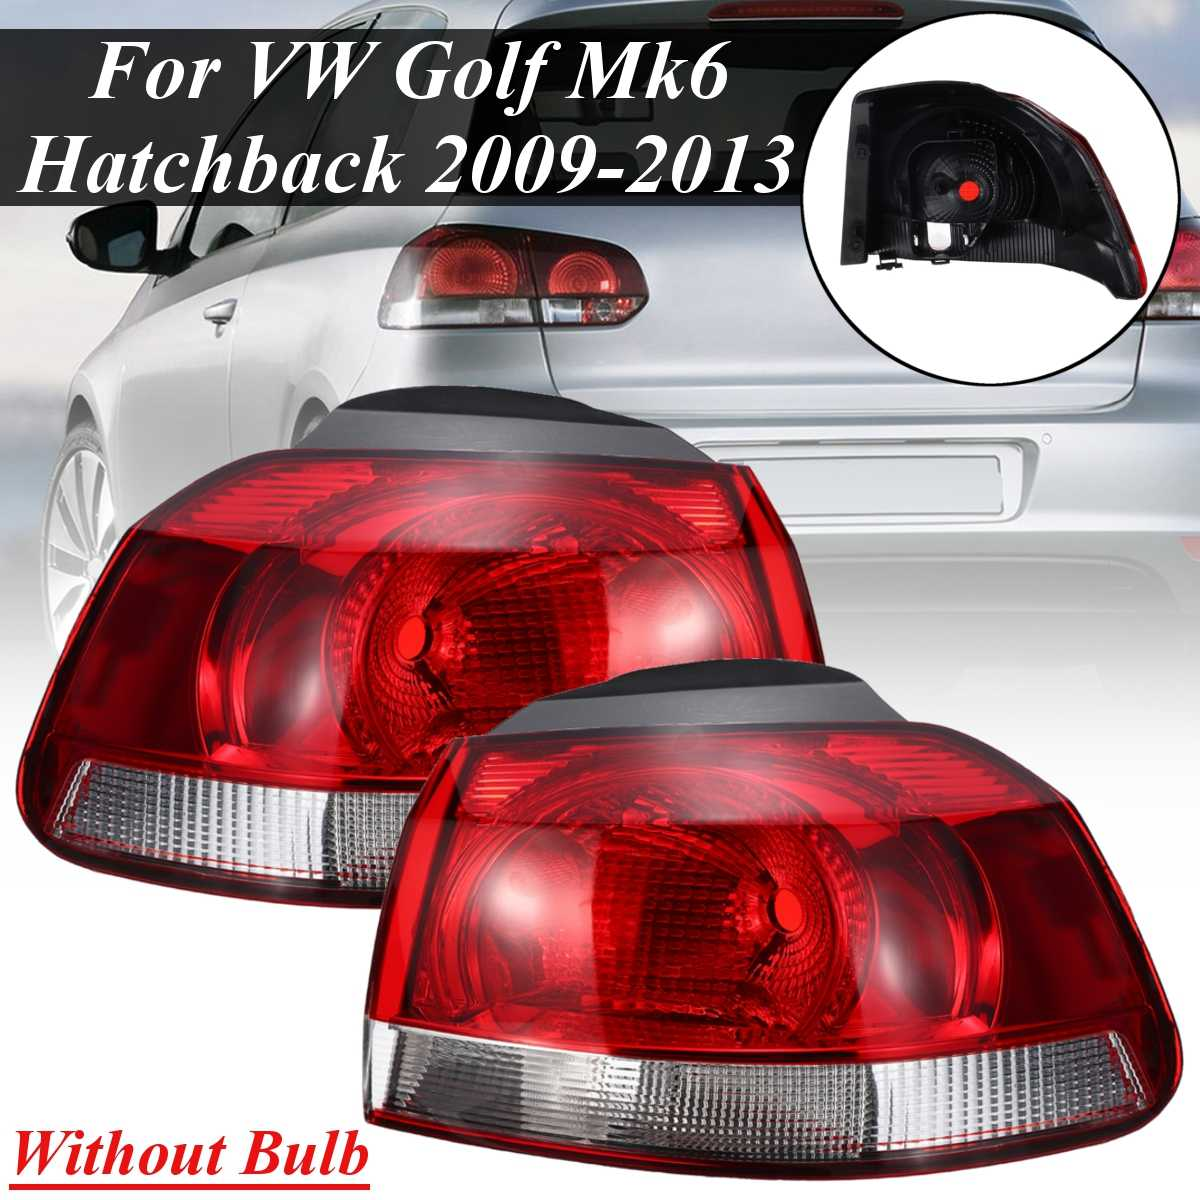 2Pcs Car Outter Tail <font><b>Light</b></font> For <font><b>VW</b></font> <font><b>Golf</b></font> Mk6 <font><b>Golf</b></font> <font><b>6</b></font> Hatchback 2009-2013 Taillights Replacement Rear Reverse Driving Side Lamp image